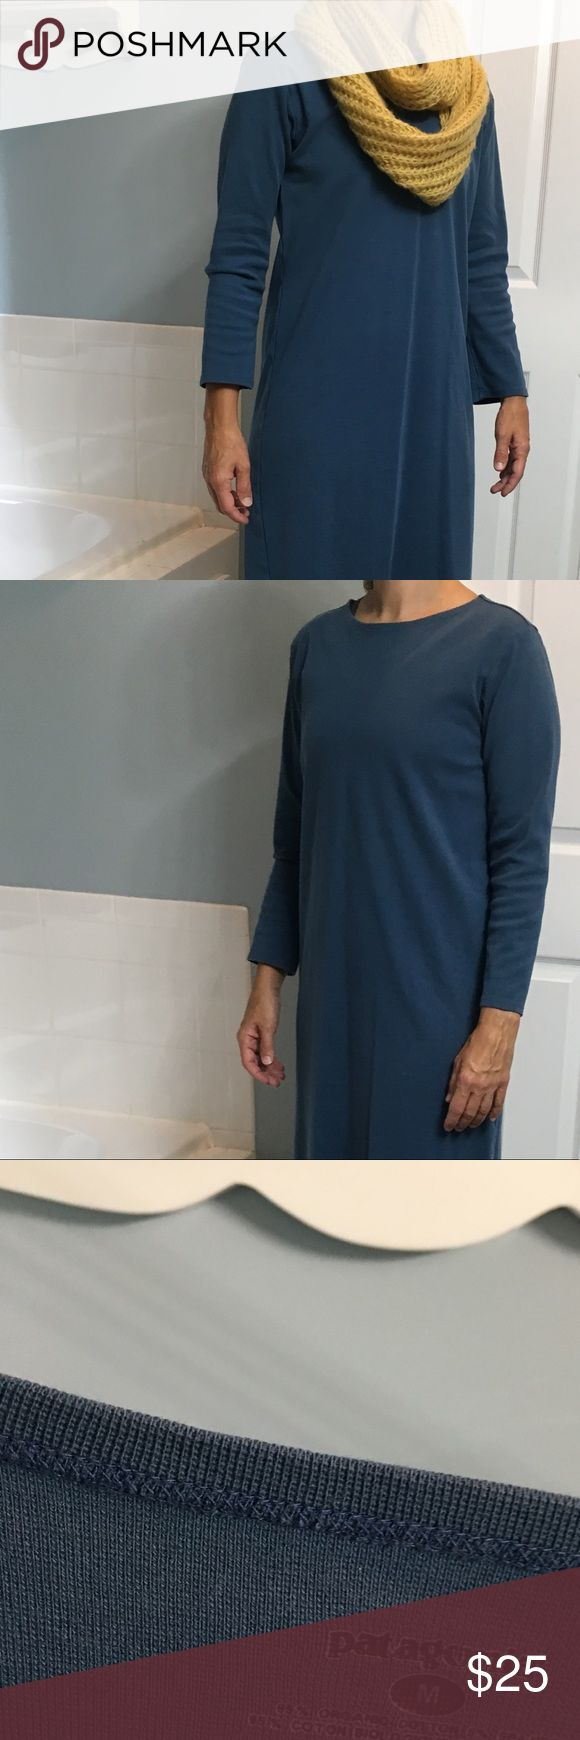 Patagonia dress Great casual dress by Patagonia. Cobalt blue, size Medium, 95% organic cotton, 5% spandex. Length 36 inches. Dress only. Boots will be listed for sale in my closet as well. Patagonia Dresses